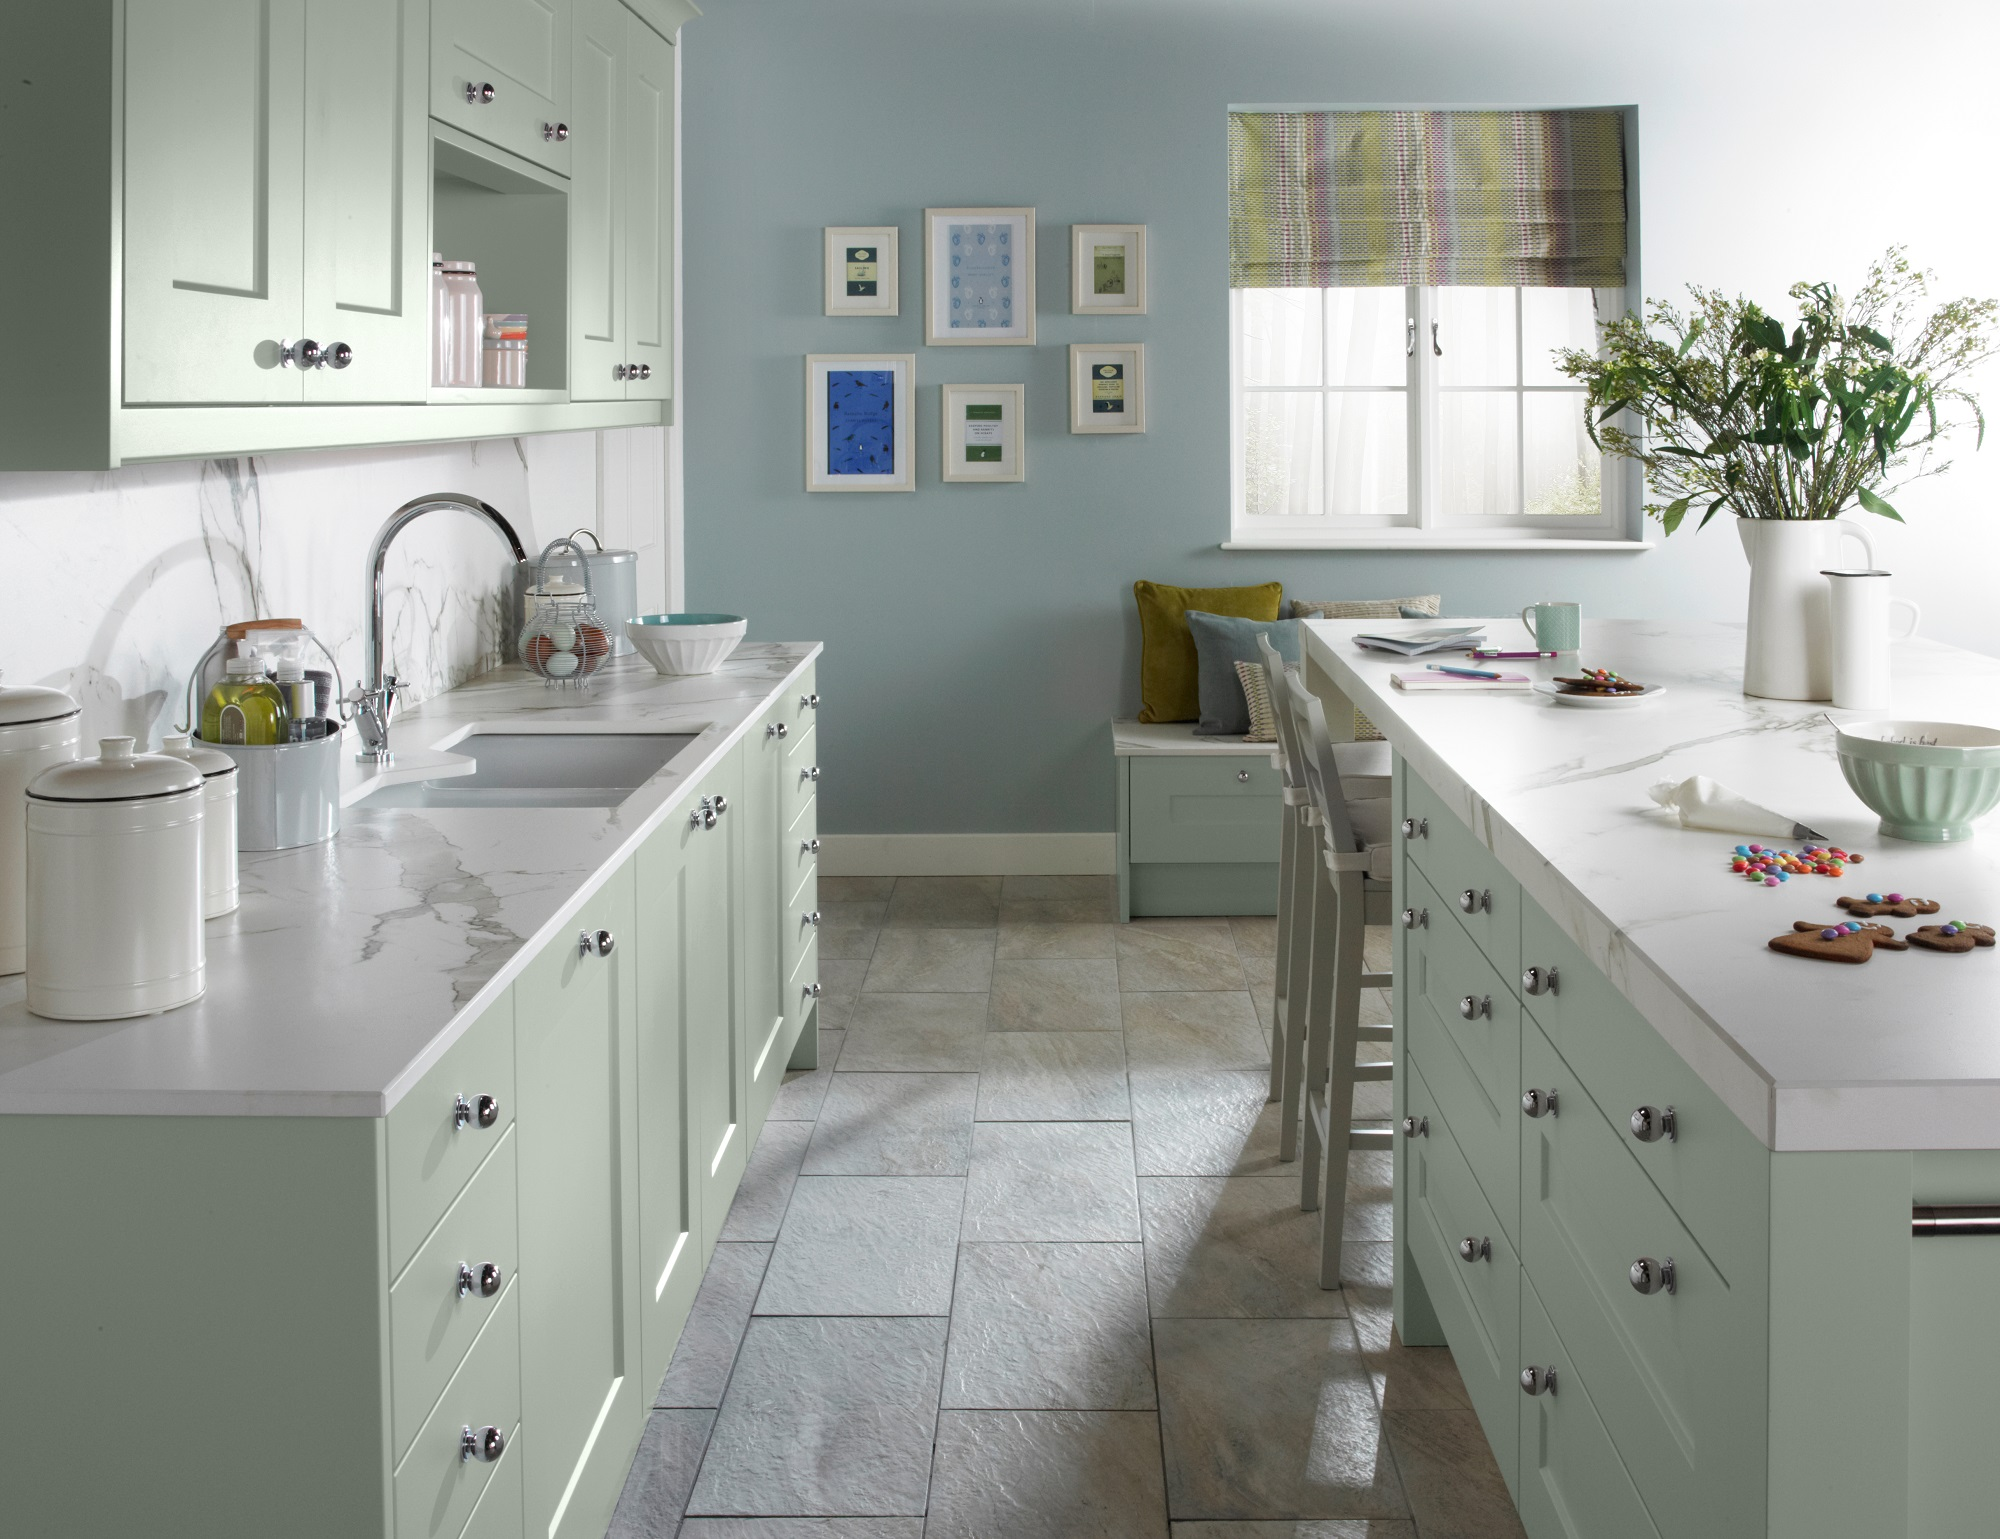 ... Matt Painted Finish Creates A Contemporary Feel, Simple Lines Look  Crisp And Clean And A Durable Finish Makes The Stowe Kitchen Family  Living Friendly.